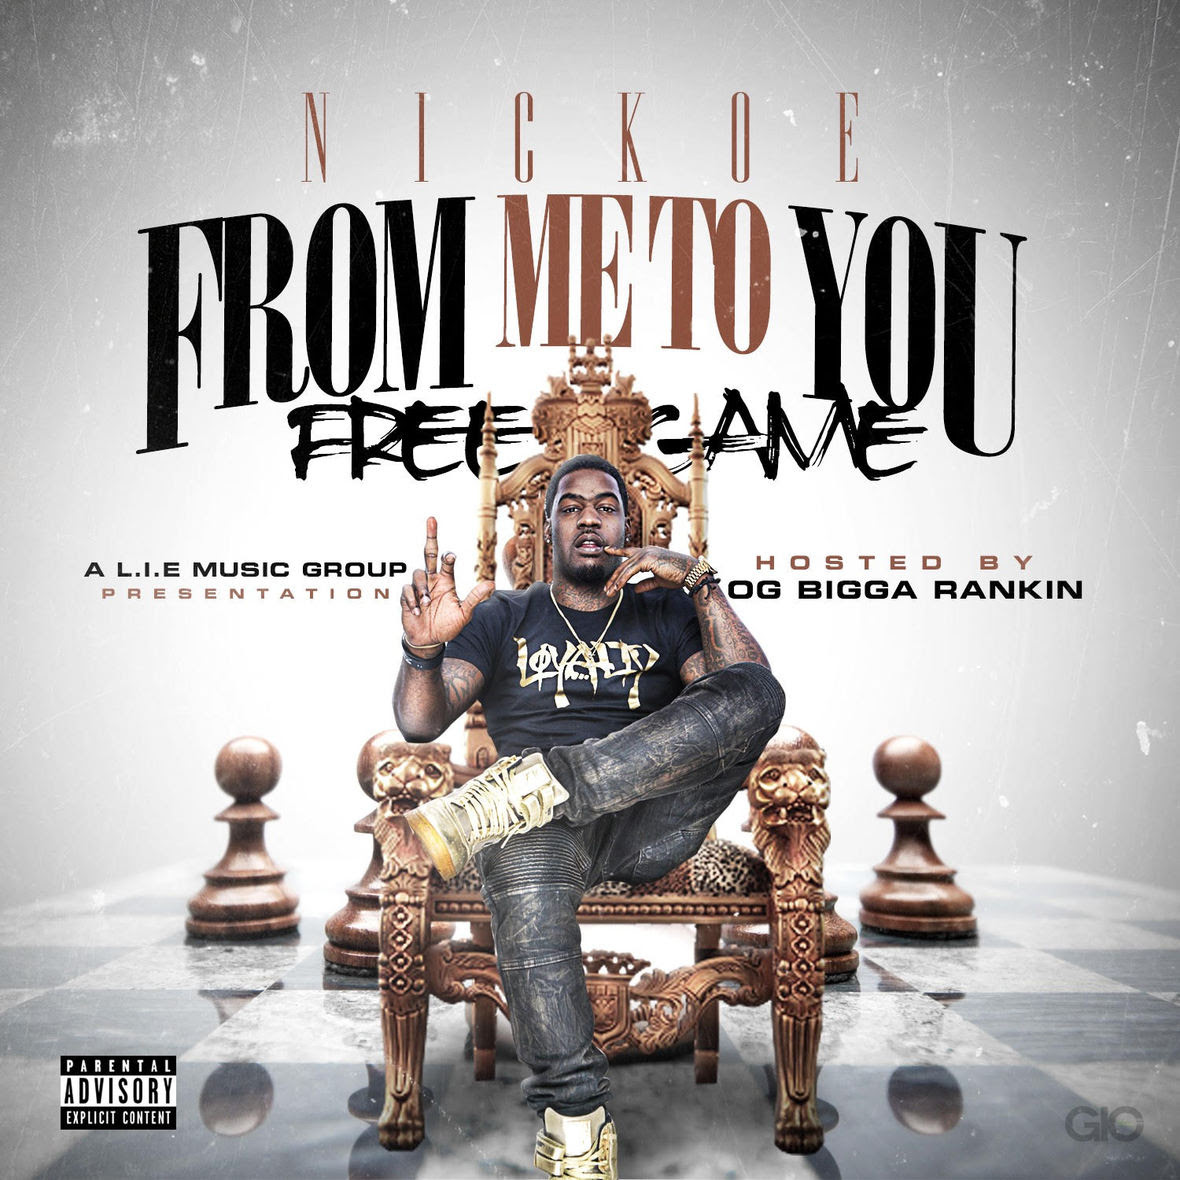 Nickoe - From Me To You FreeGame Front Cover